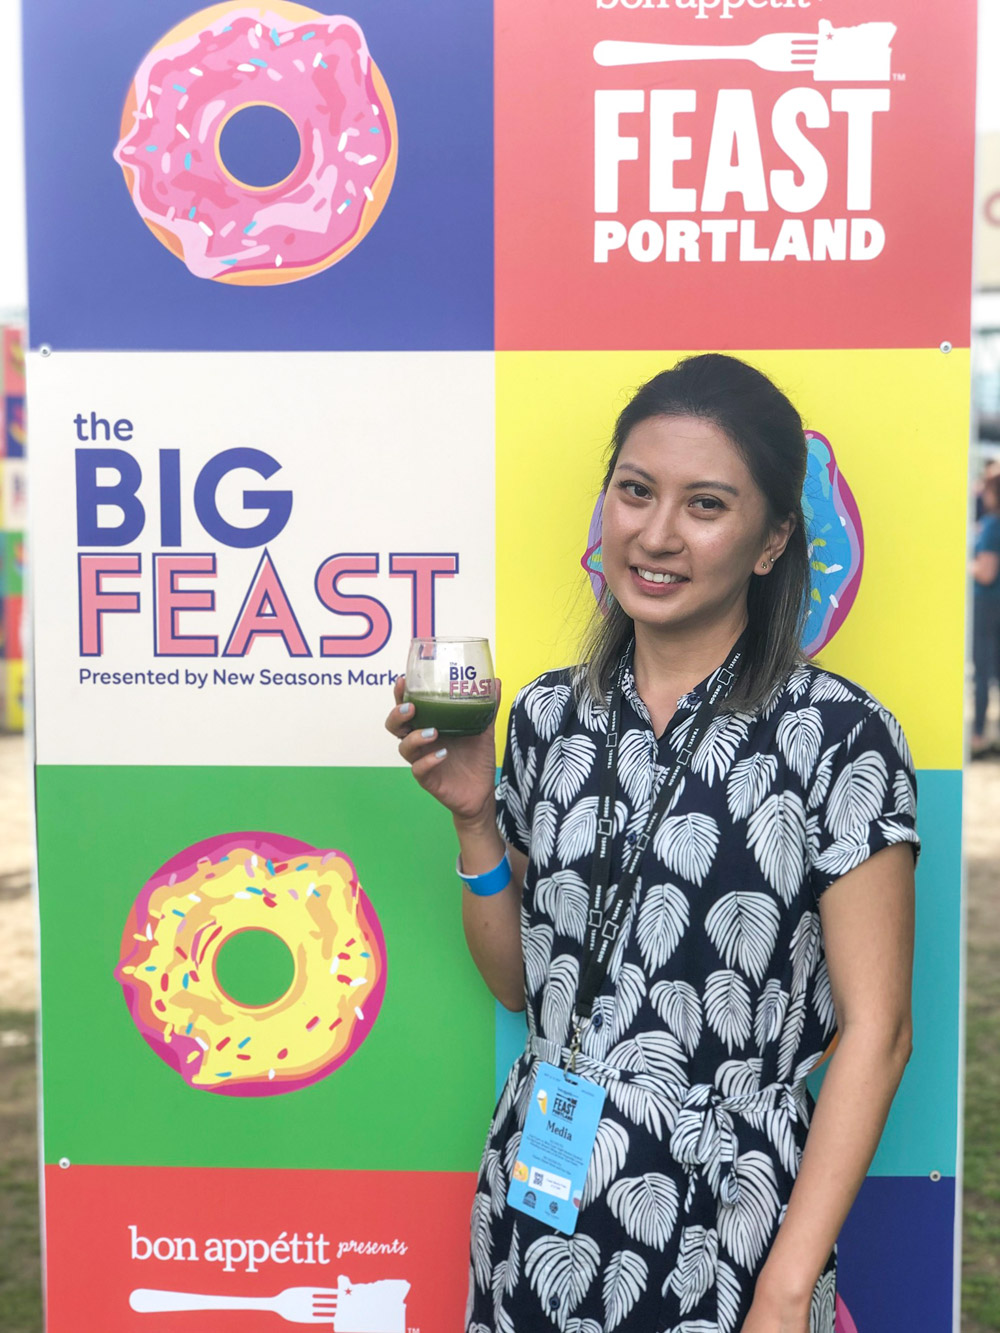 Feast Portland 2019: Post-Festival Thoughts from a Vegan Perspective